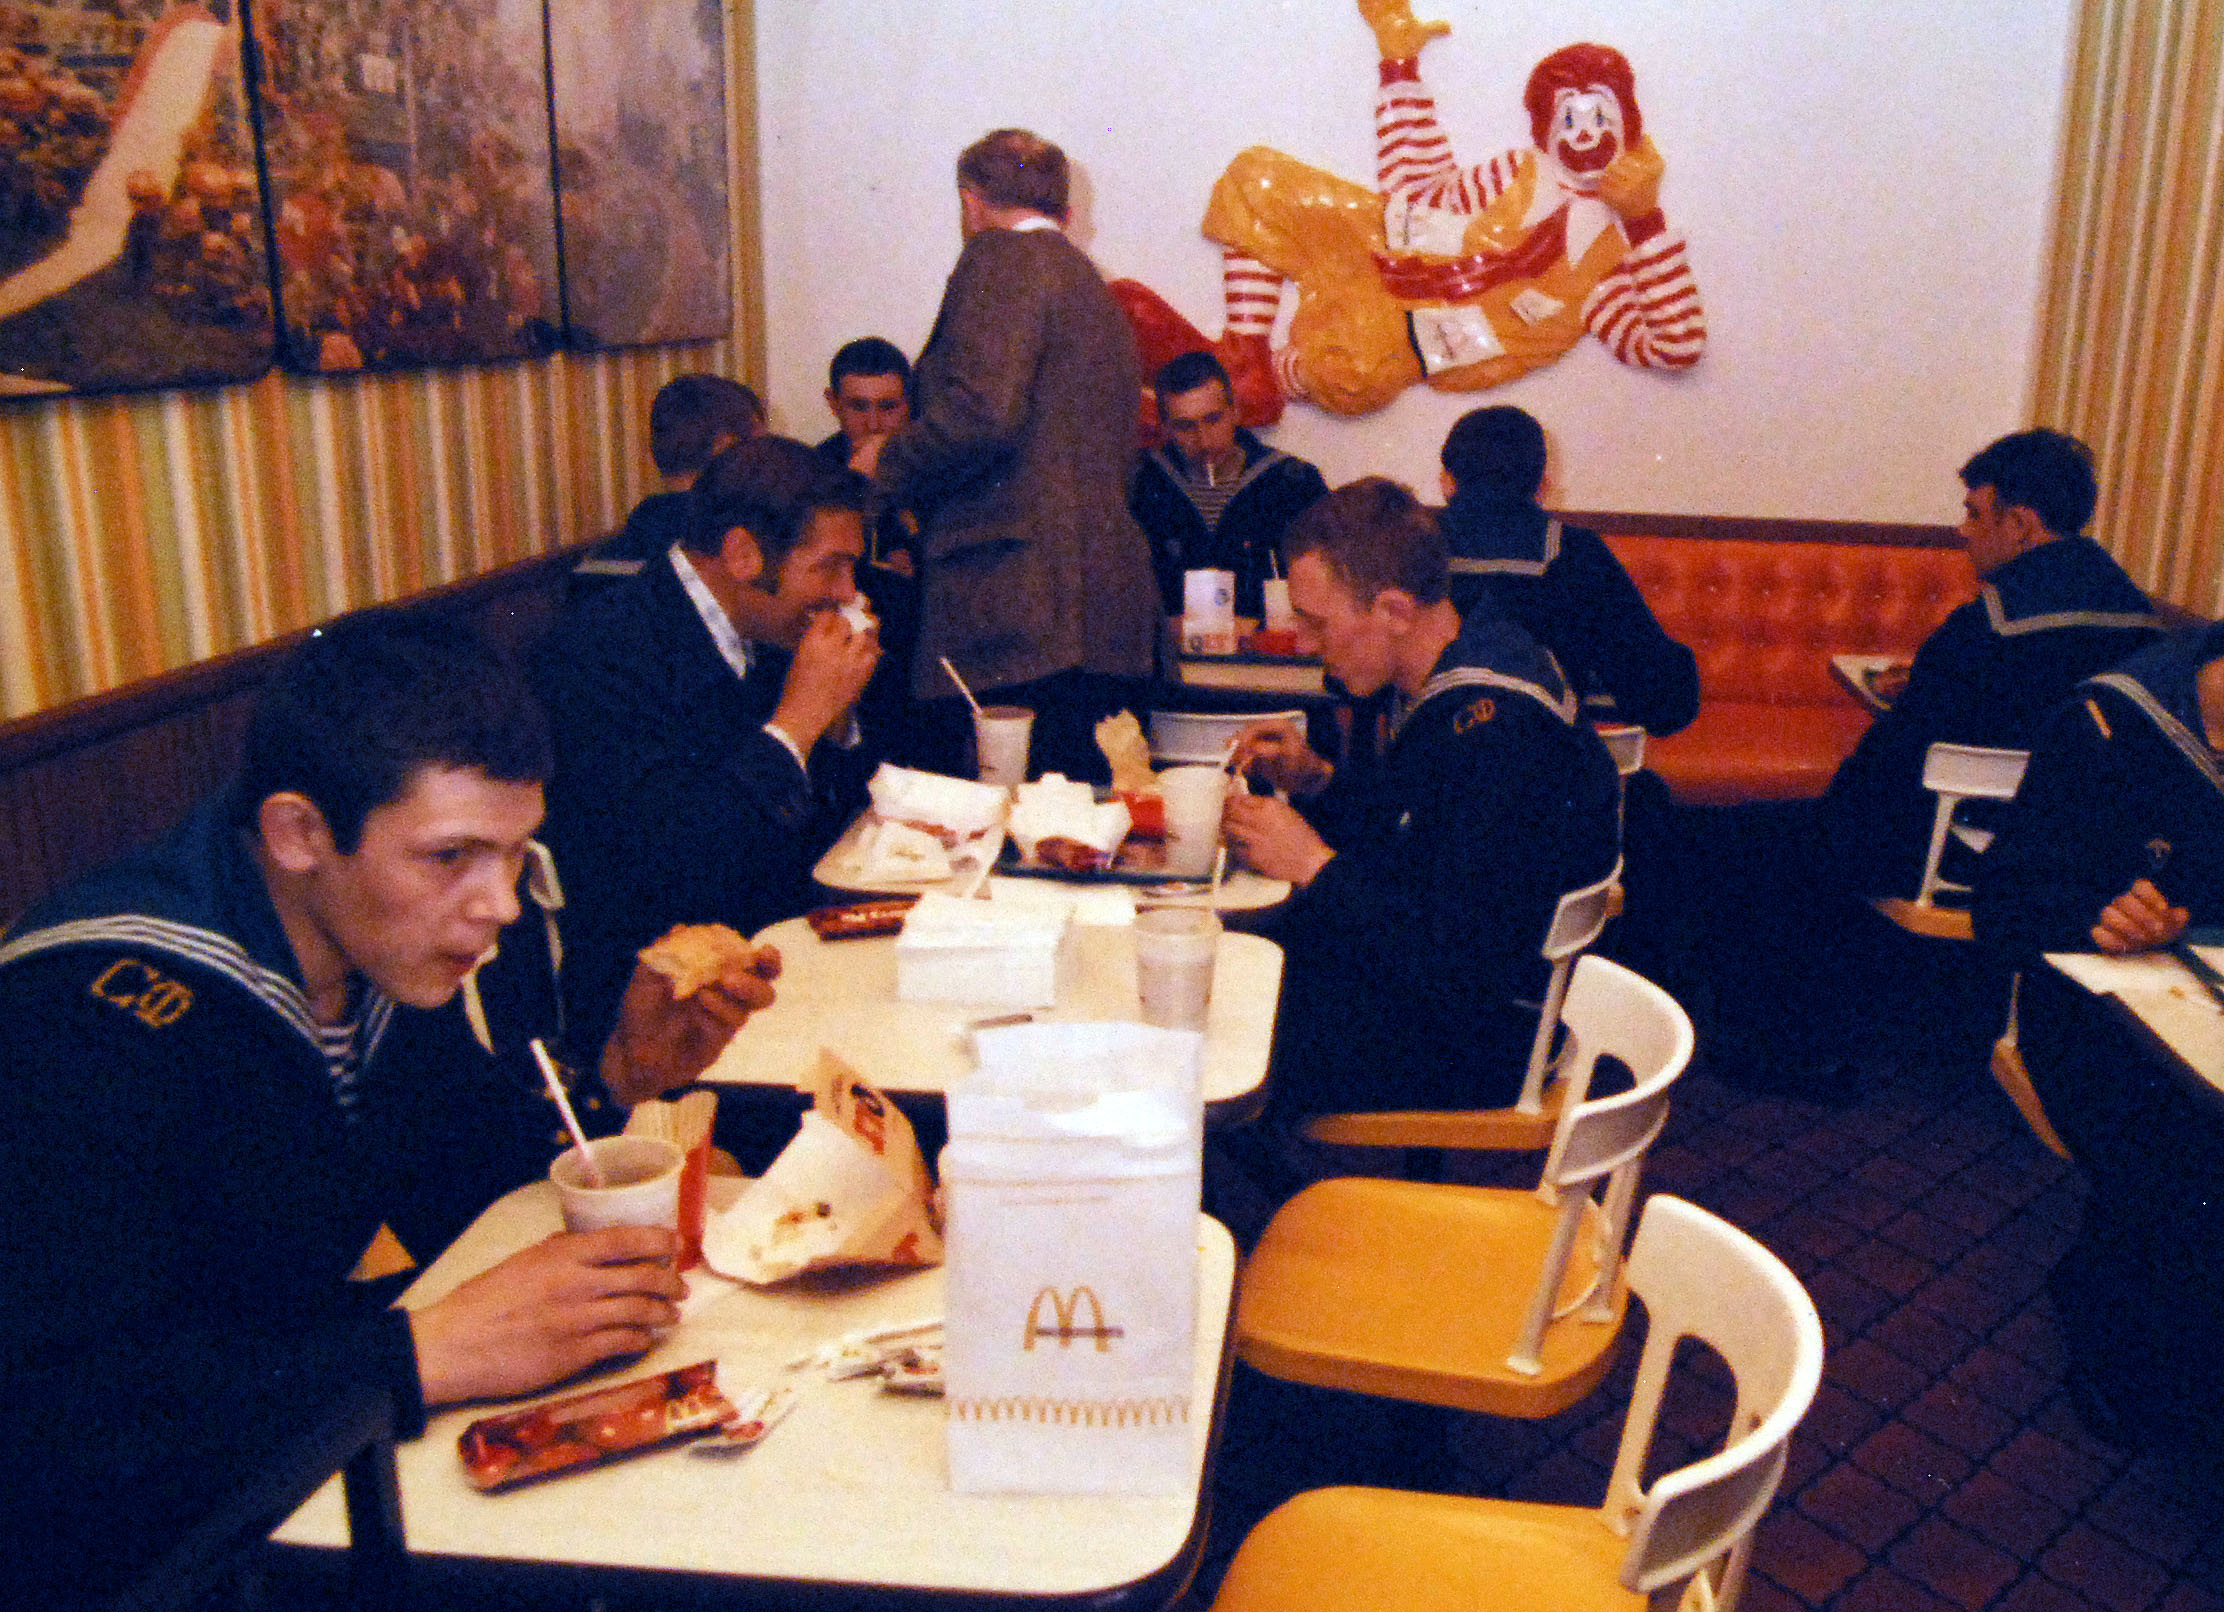 Cambridge, Massachusetts. Soviet sailors from the two Soviet Kanin class guided missile destroyers, Boykiy, 290, and Zhguchiy, 288, eat lunch at McDonald's during a sightseeing tour. The two Soviet ships are making a port visit to Bo.jpg